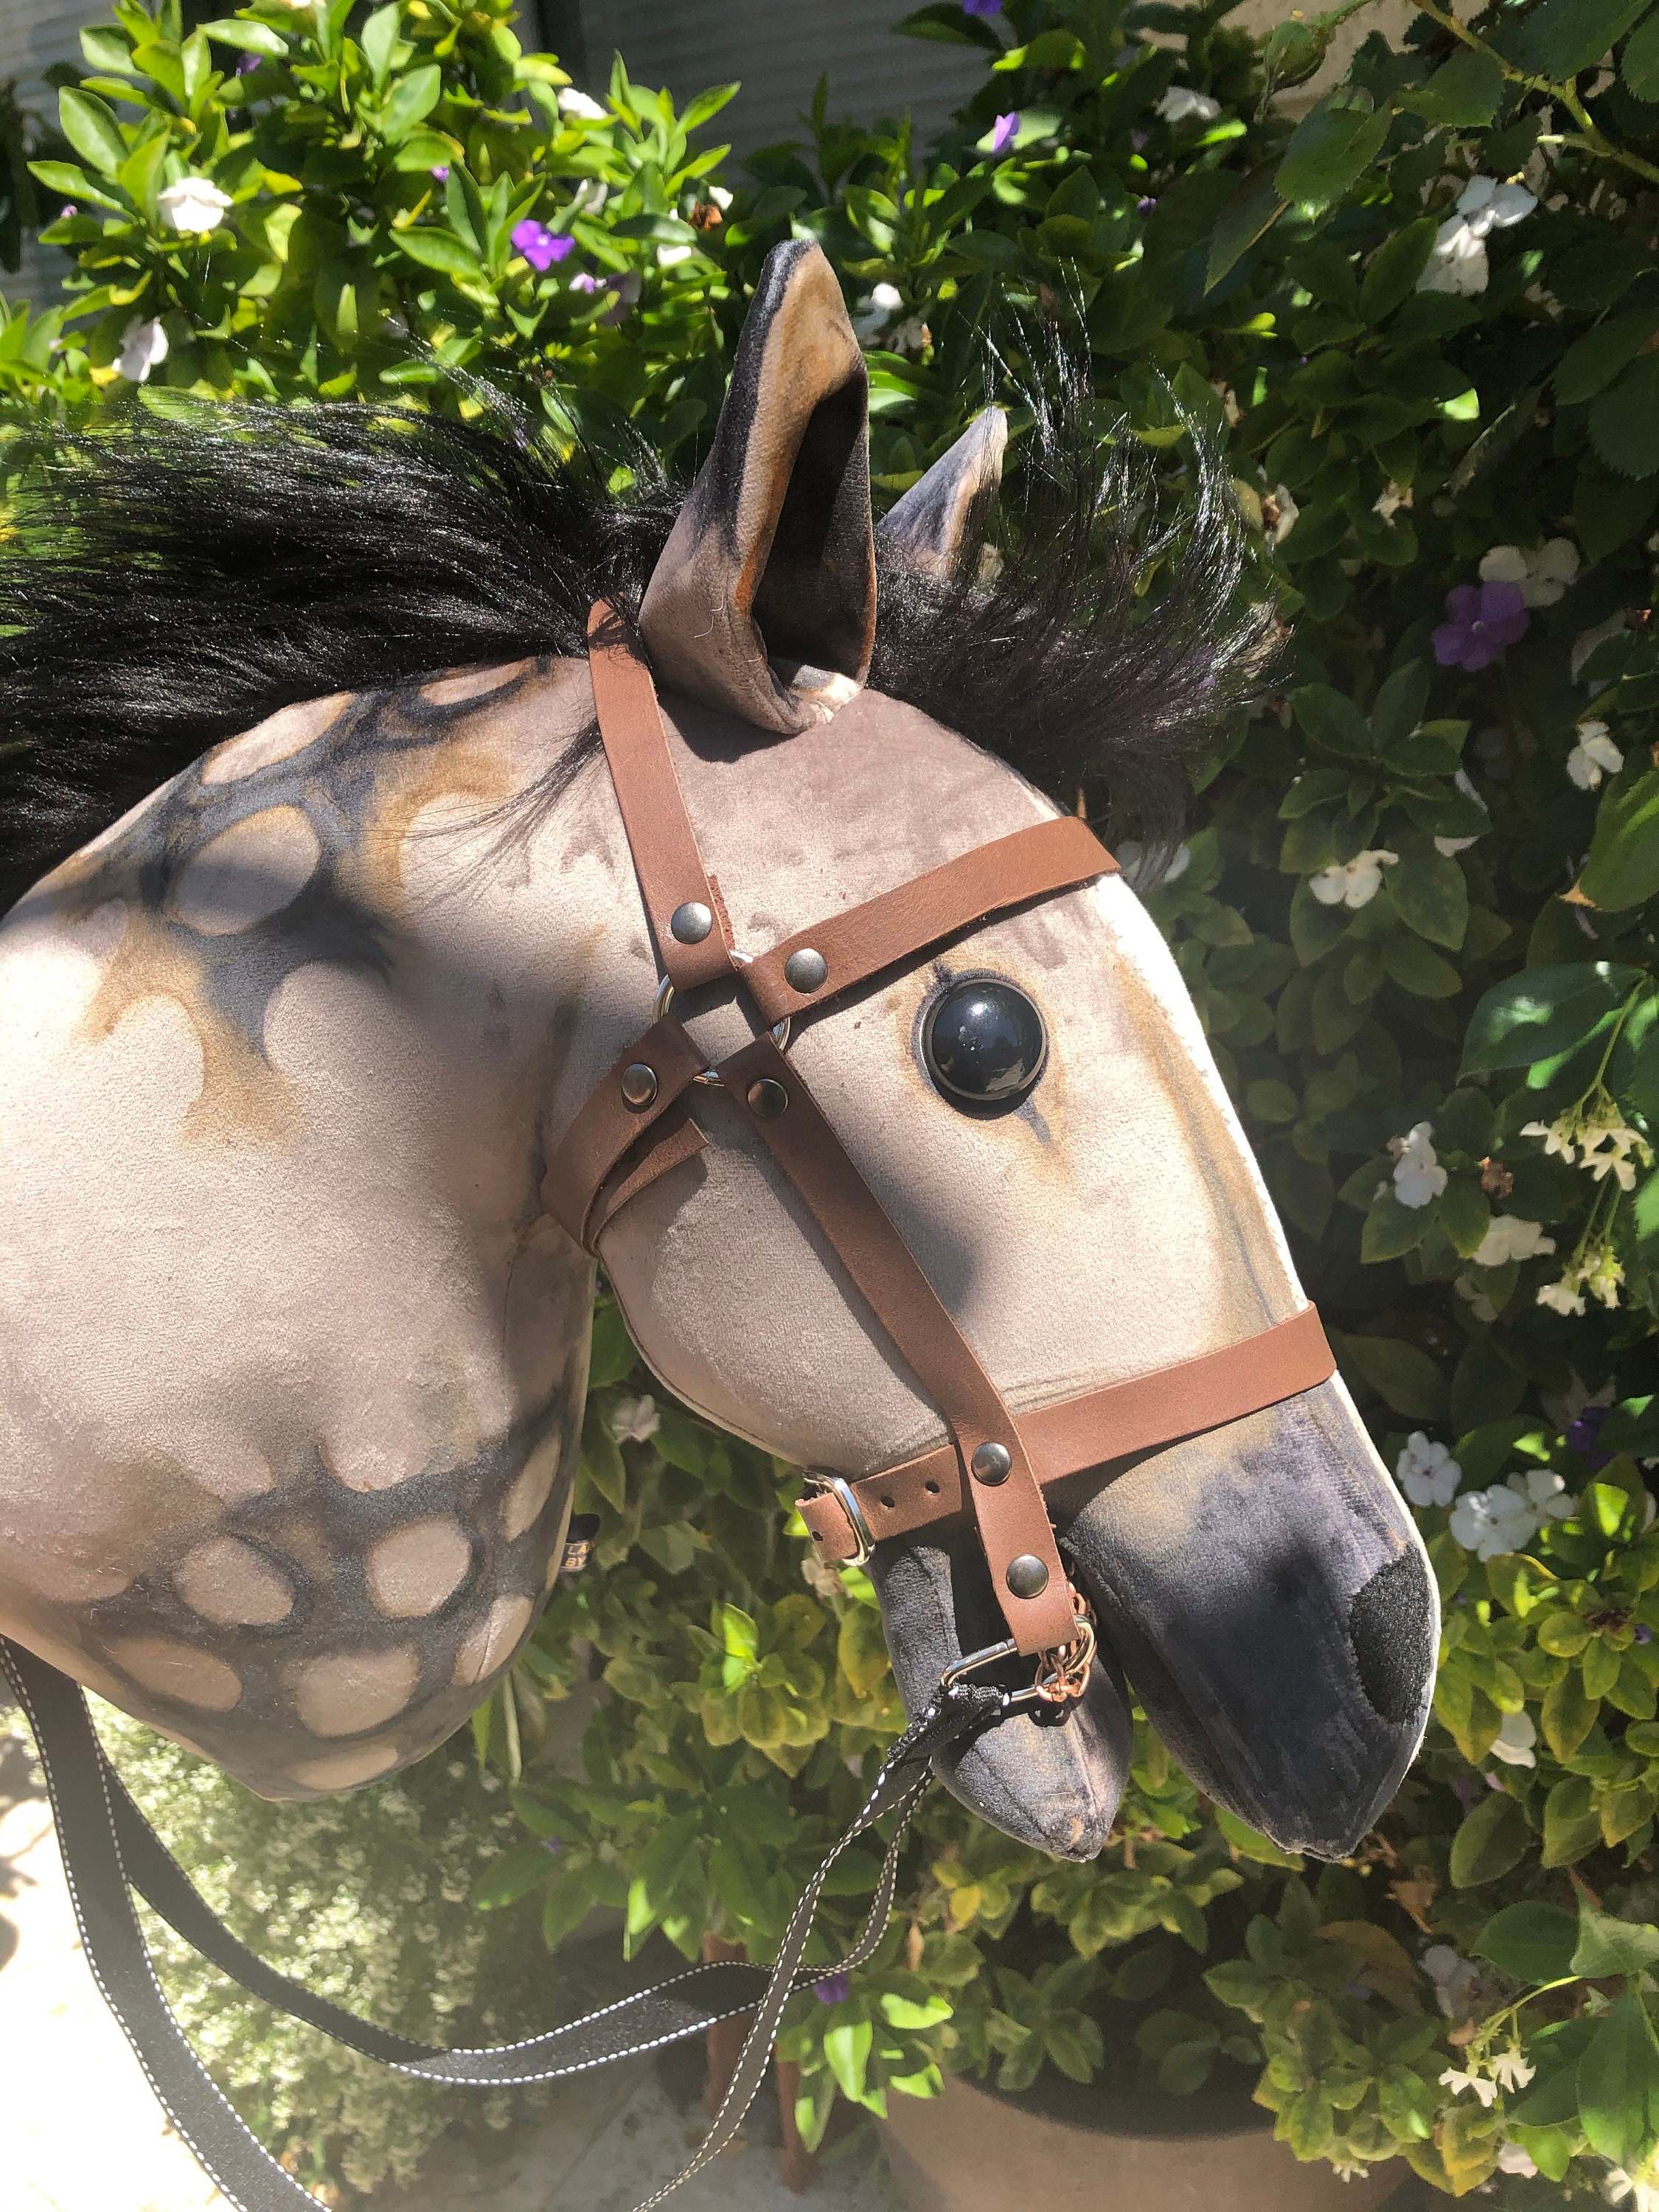 Dapple Grey Hobby Horse With Open Mouth And Blaze Stick Horse Removable Bridle